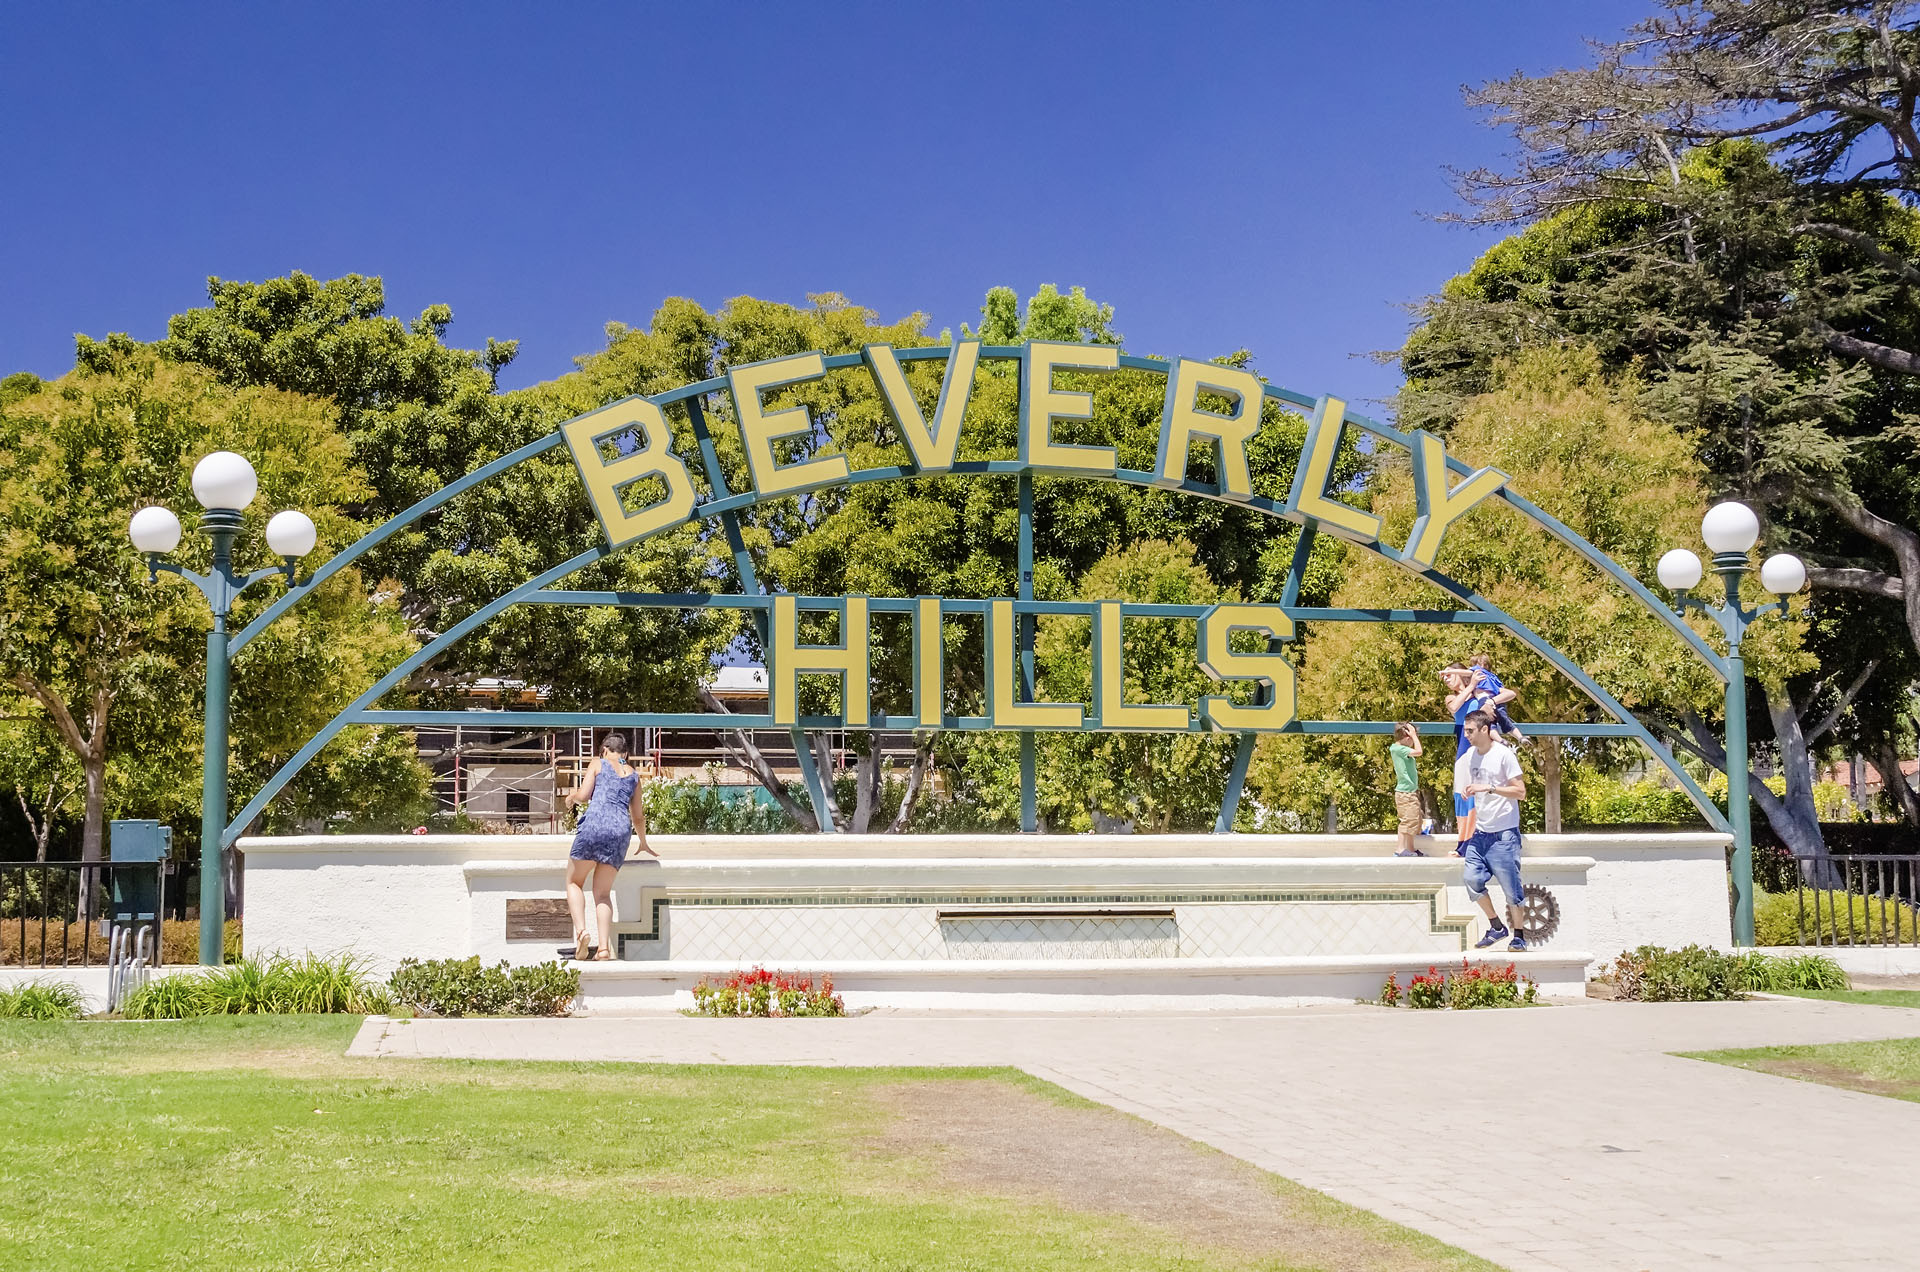 Beverly Hills Sign, Los Angeles, California, USA